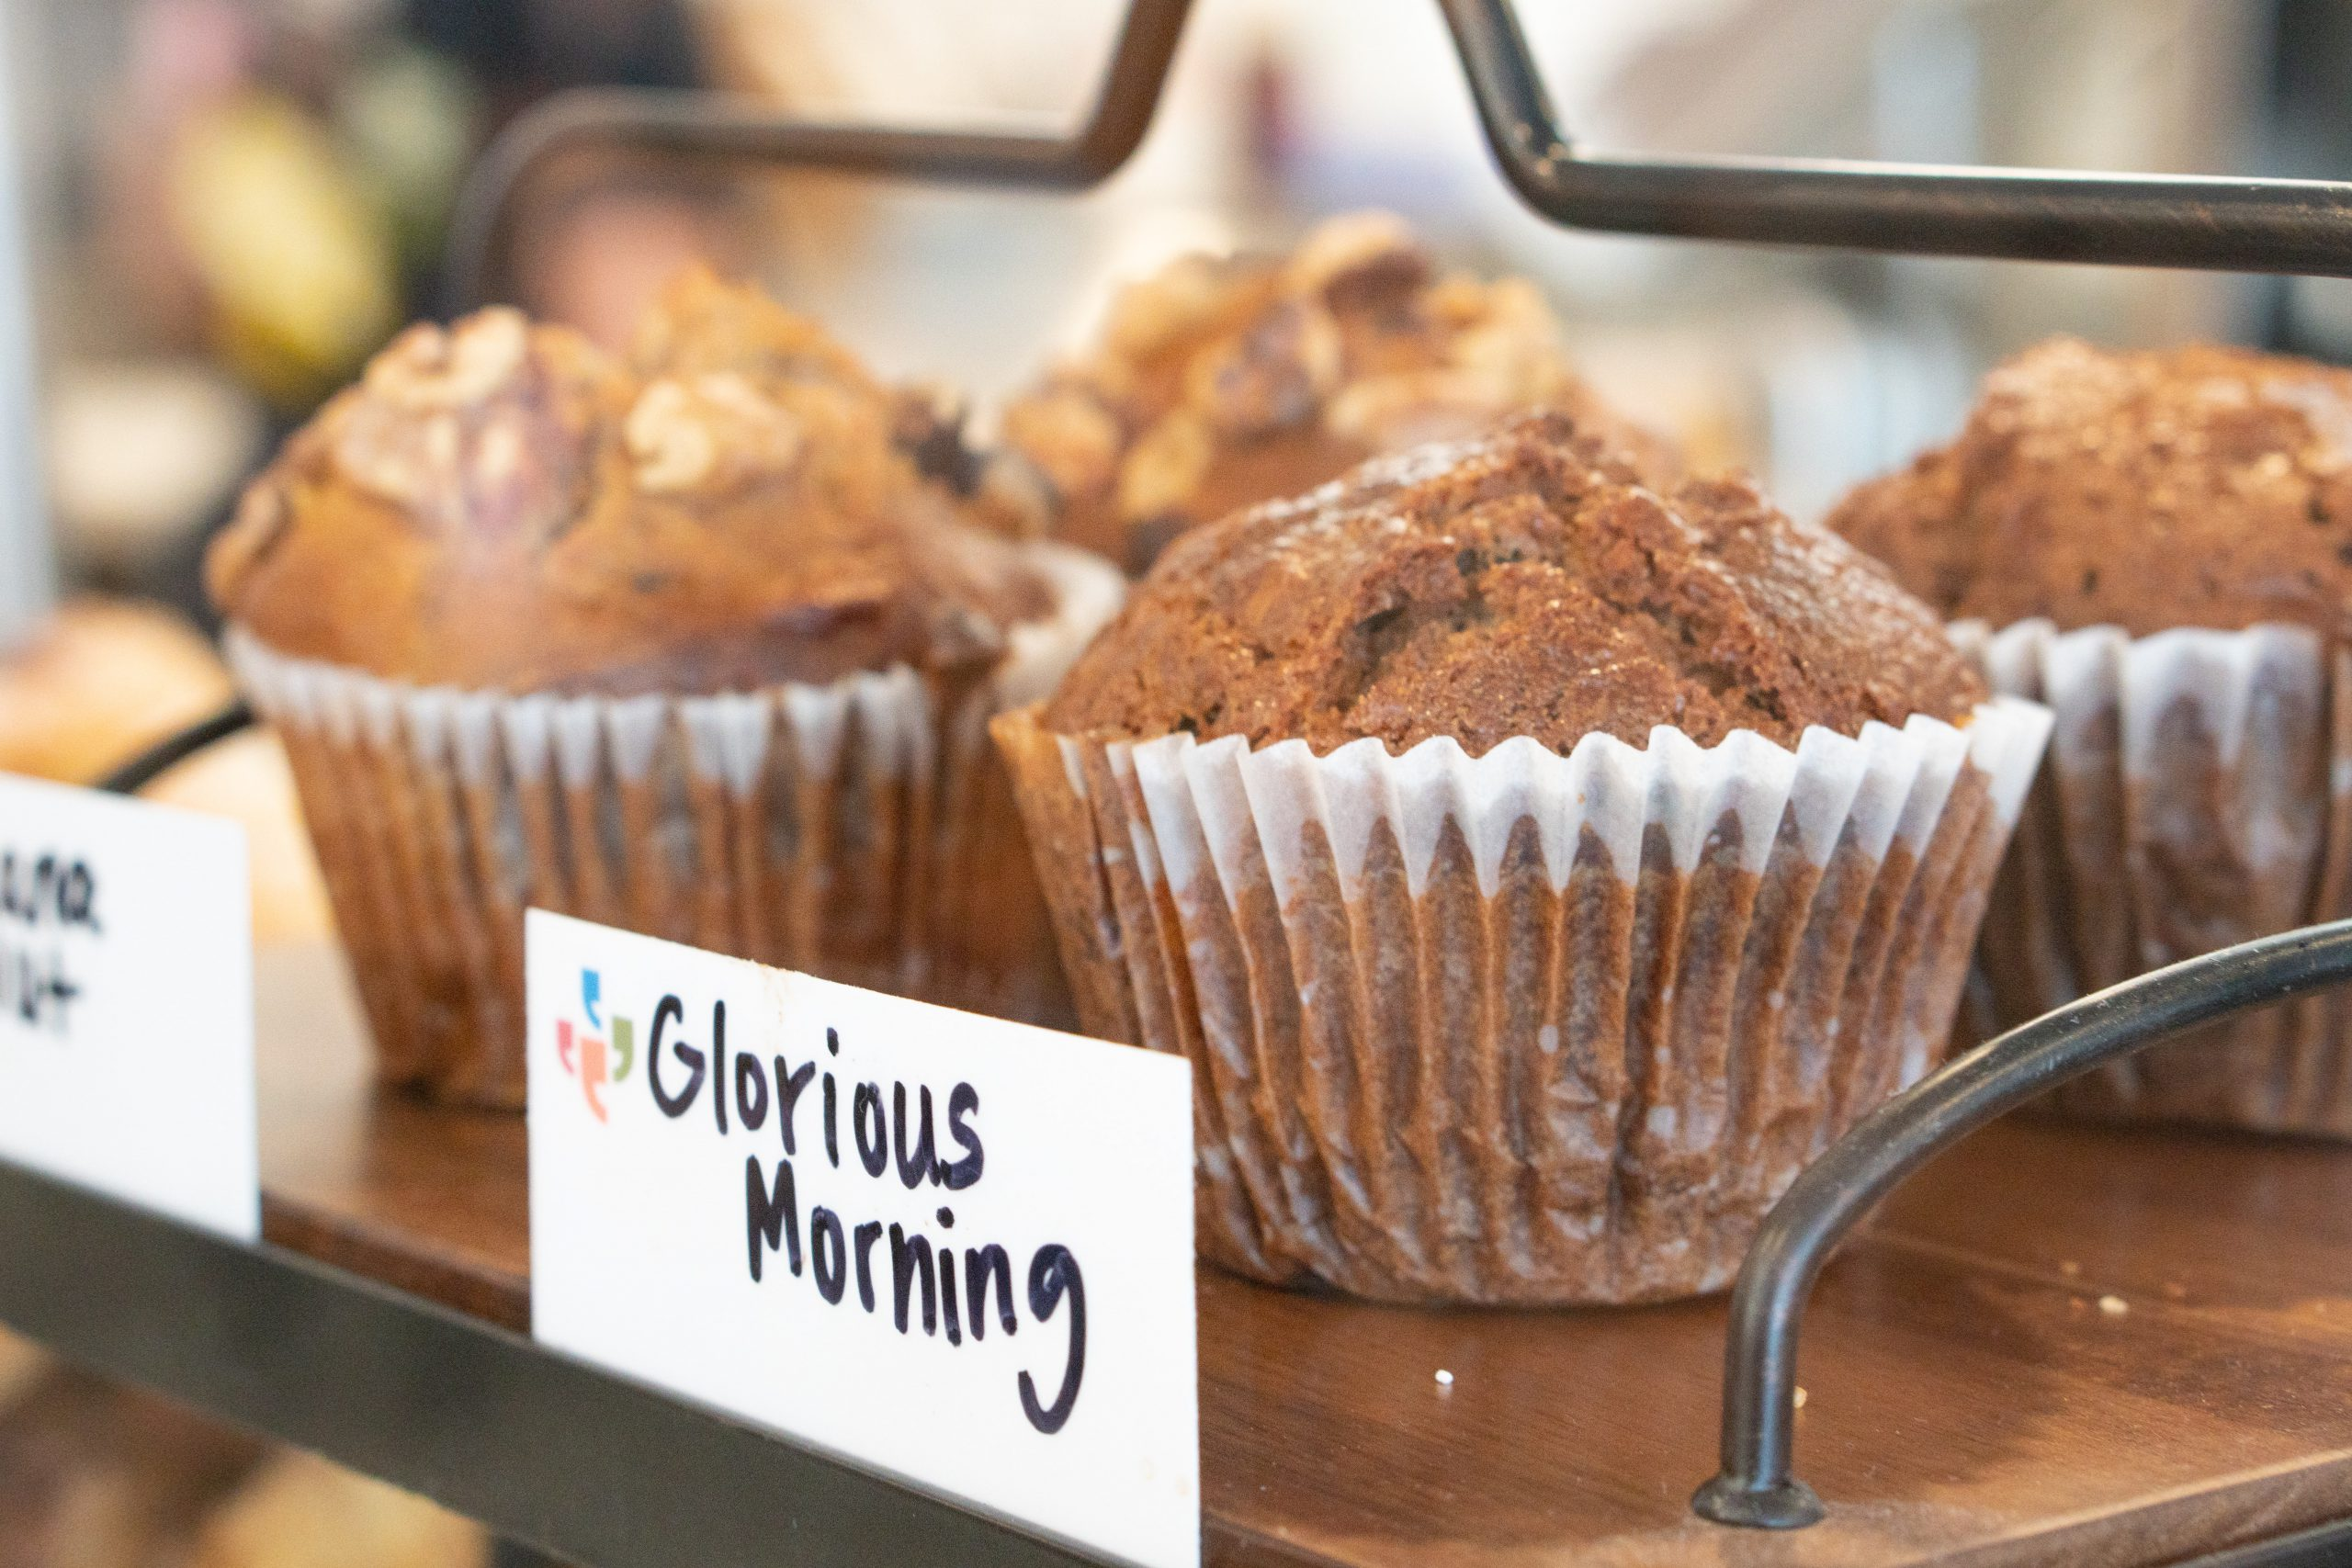 """""""Glorious morning"""" sign with muffins"""